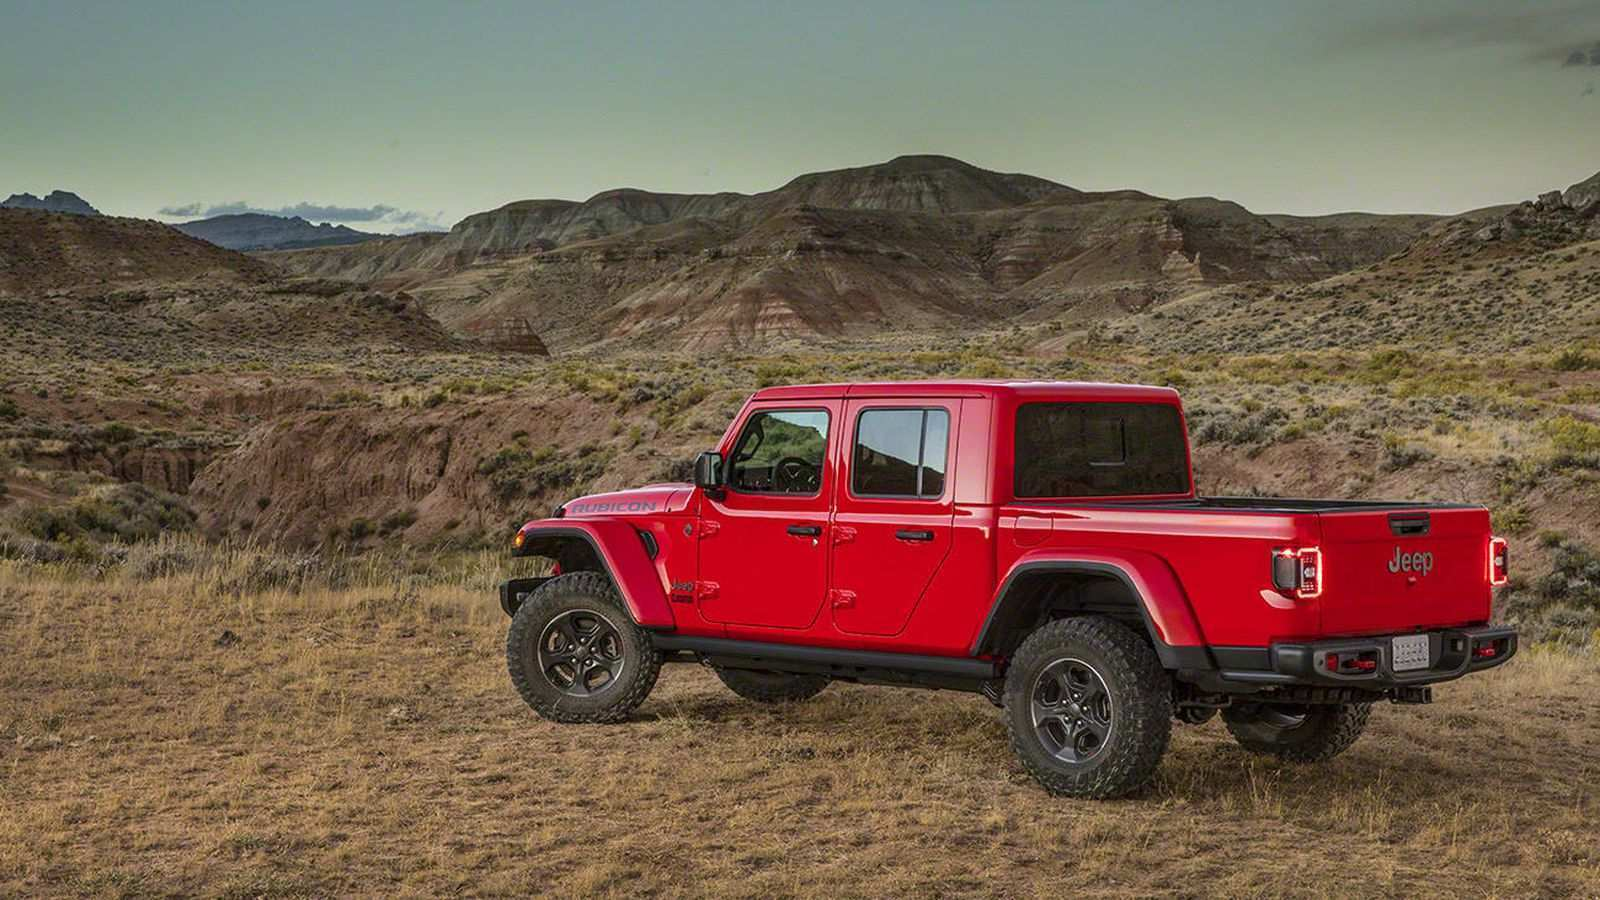 58 Best Review 2020 Jeep Wrangler Pickup Truck Wallpaper by 2020 Jeep Wrangler Pickup Truck